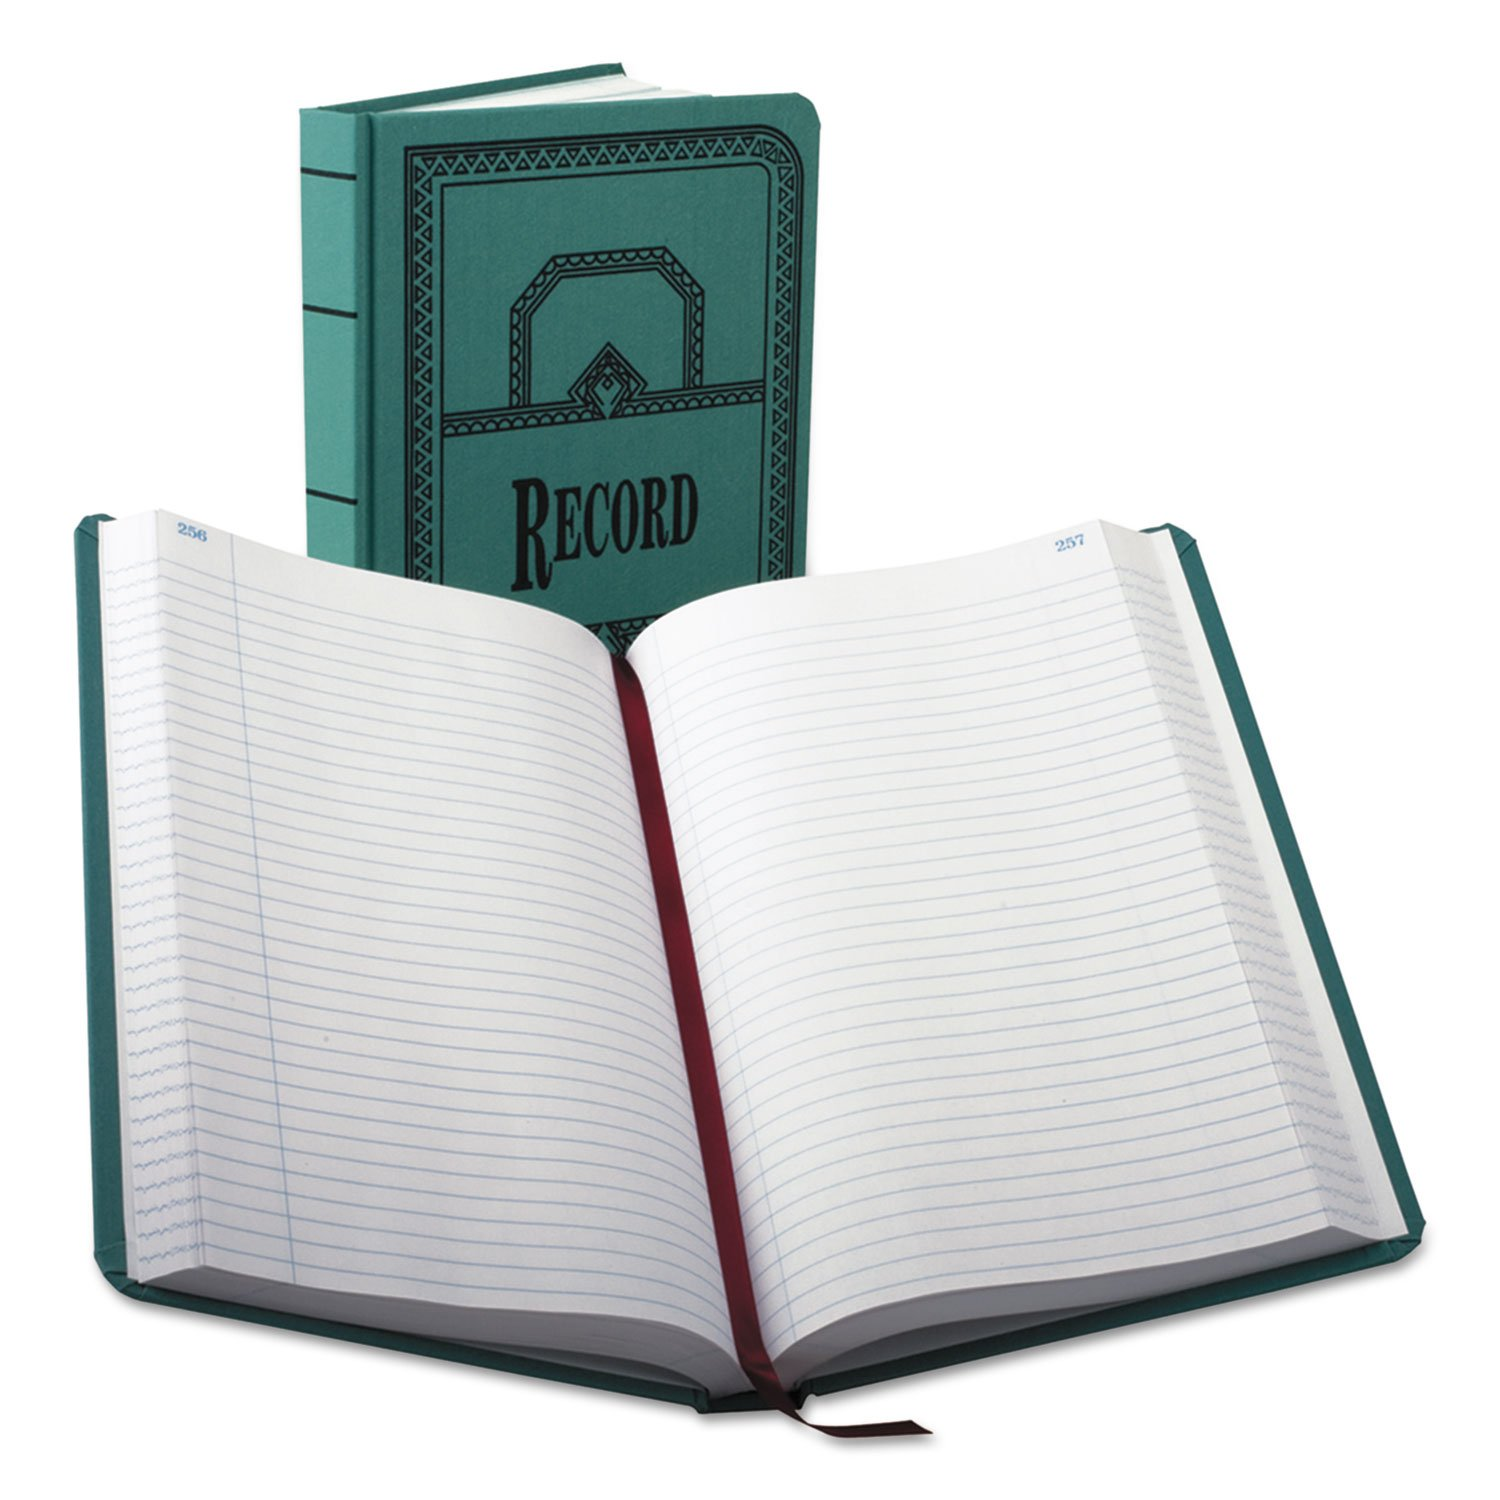 Boorum & Pease 66500R Account Book, Record-Ruled, 500 Pages, 12-1/8''x7-5/8'', Blue